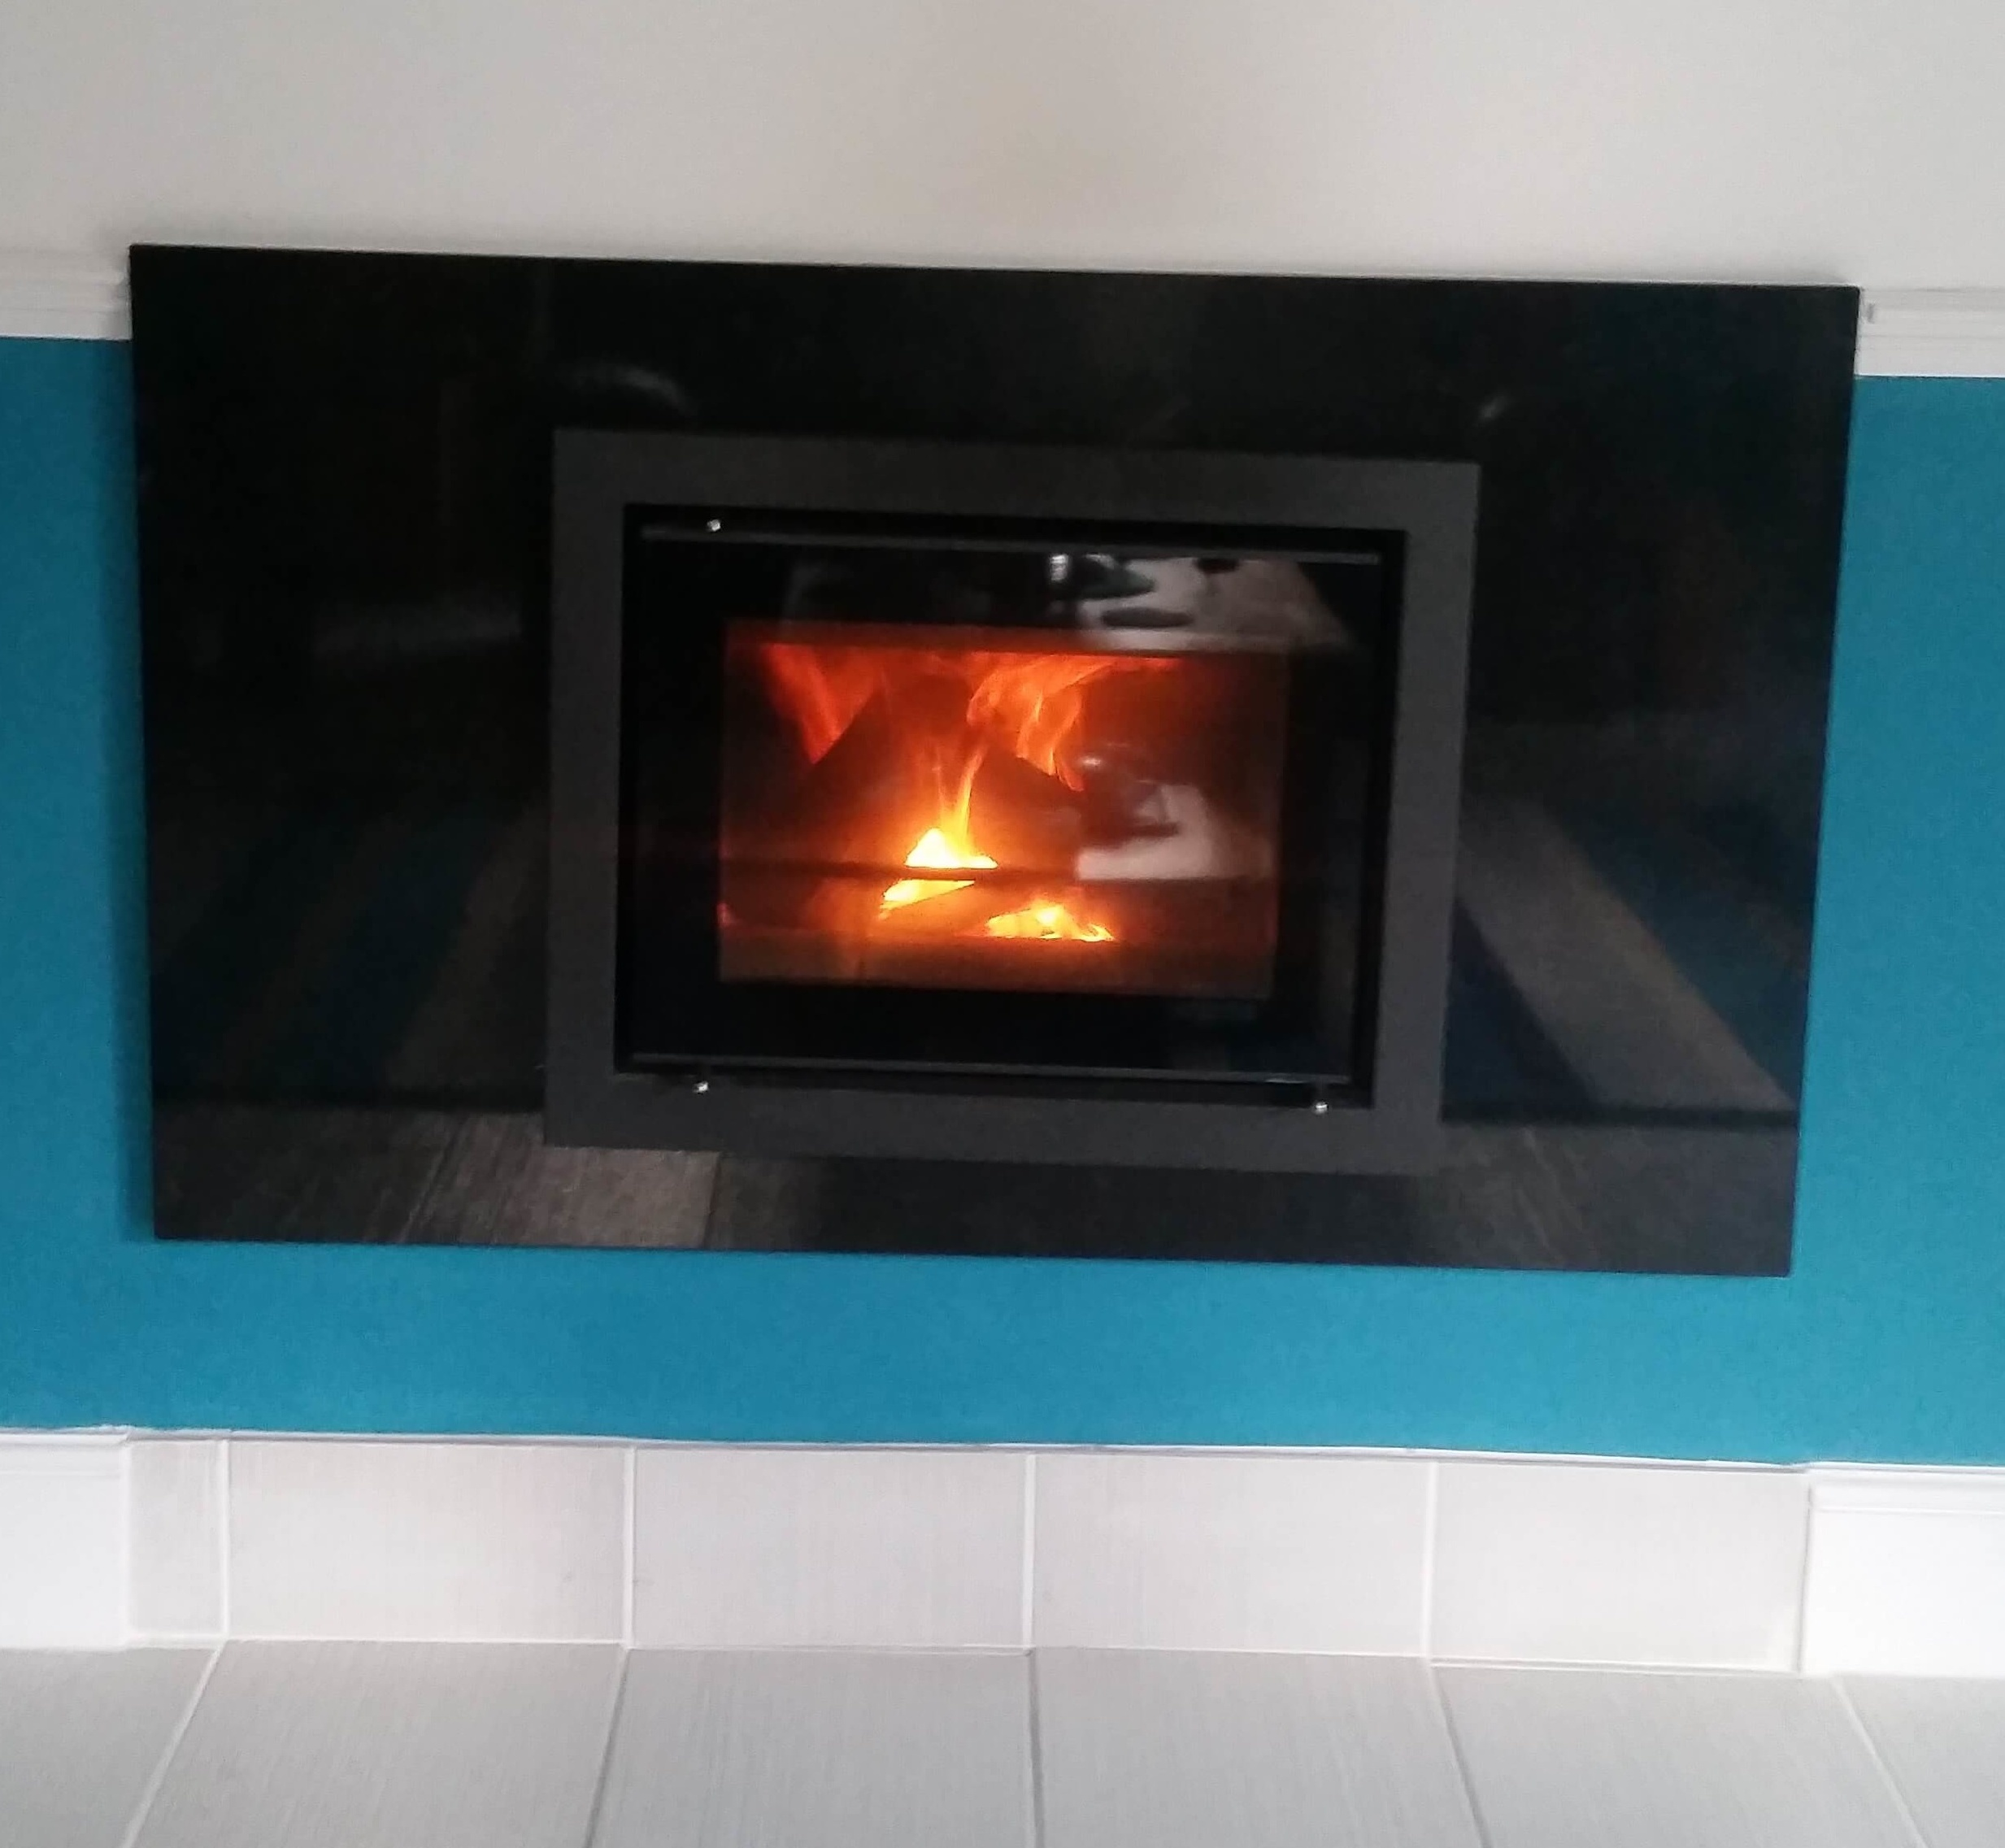 Gazco Riva Inset Multifuel and Woodburning Stove - Enville, Staffordshire